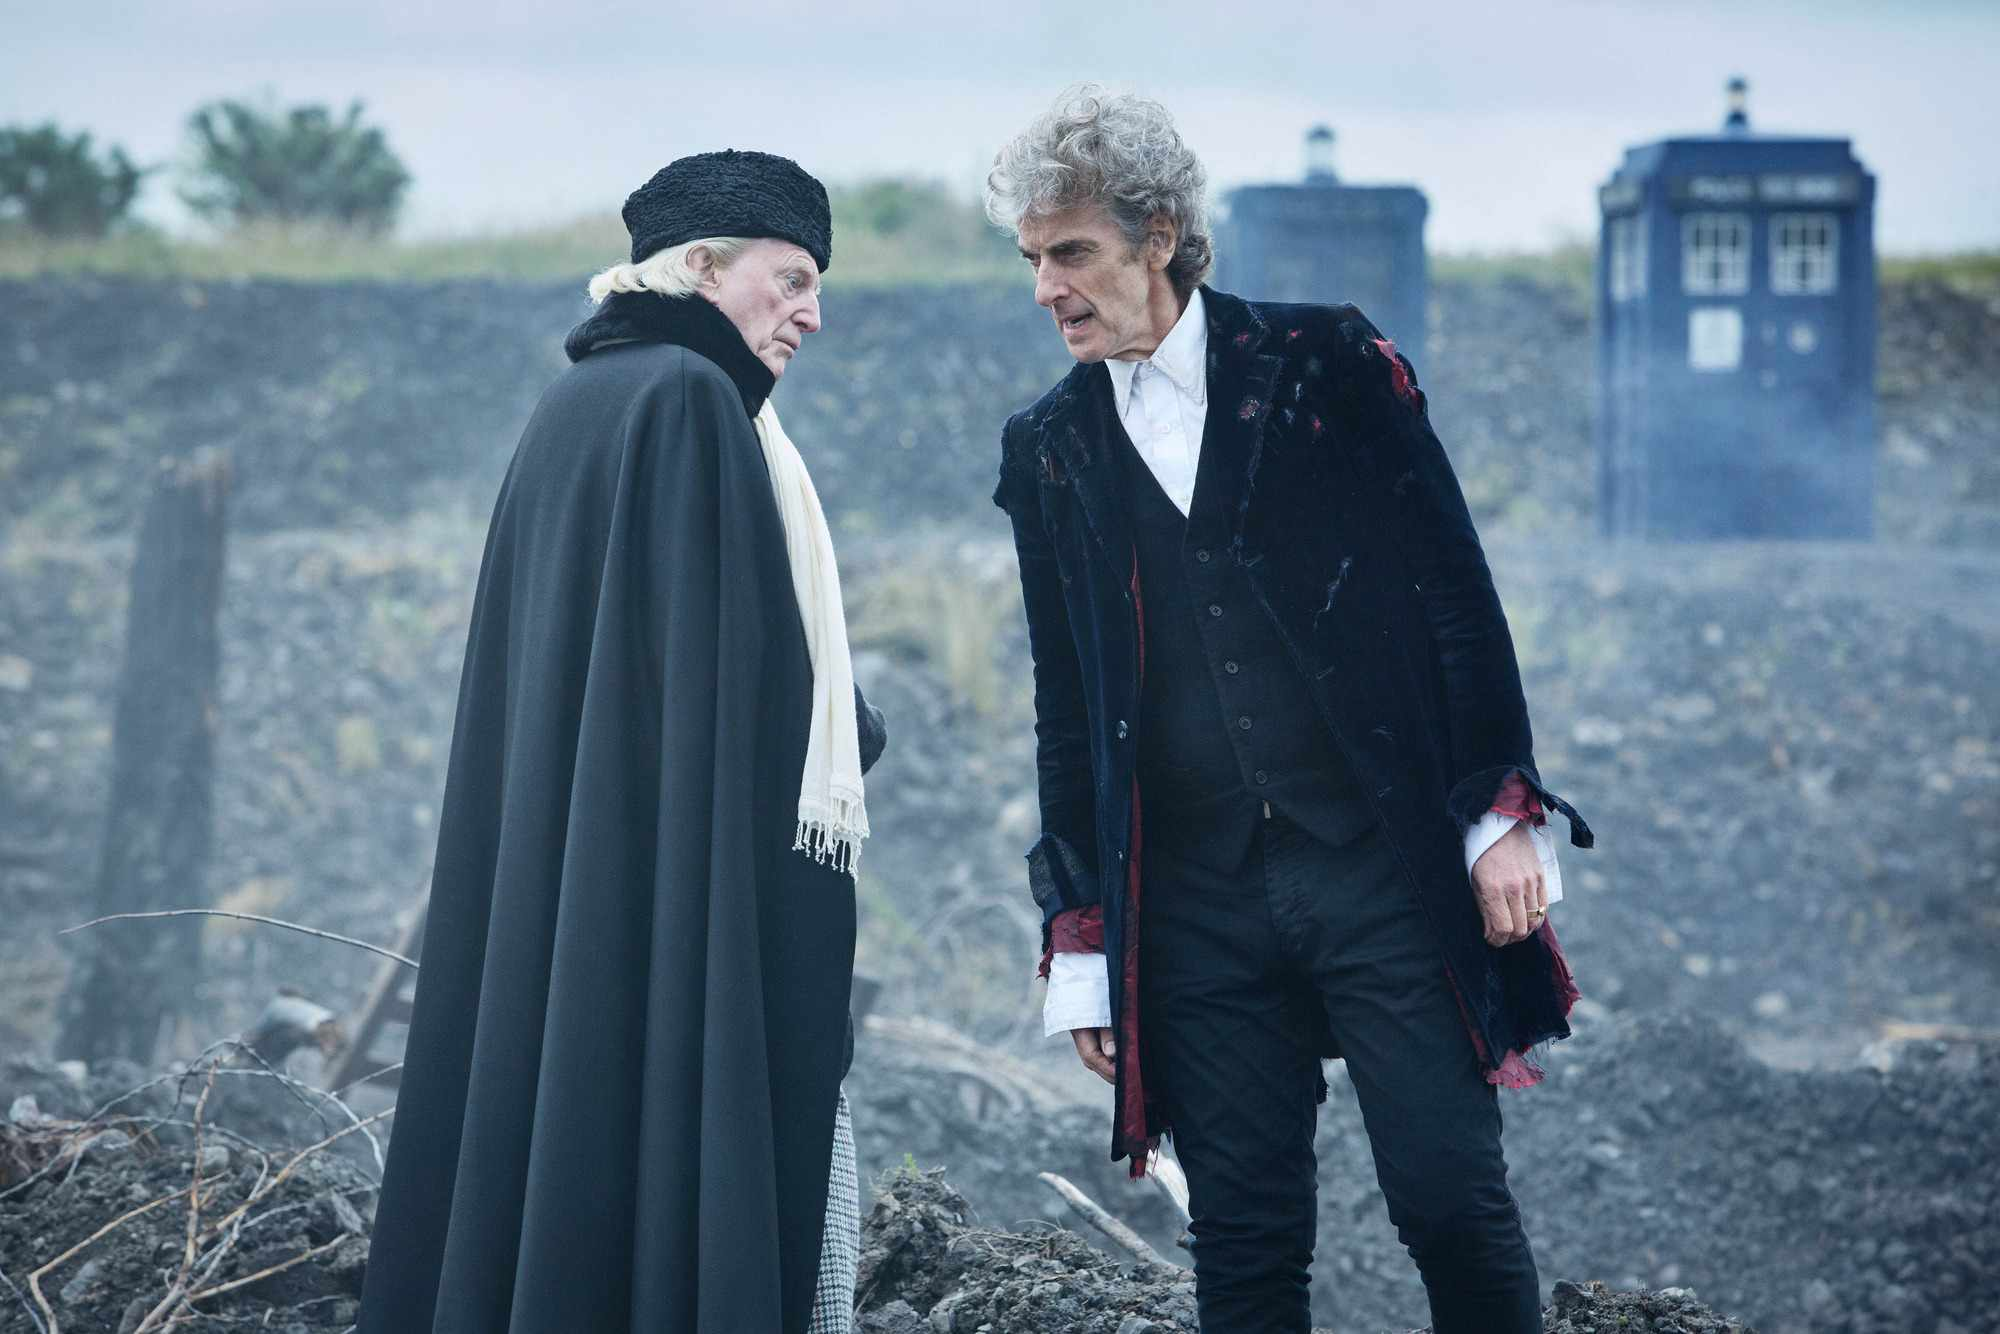 David Bradley and Peter Capaldi in the 2017 Doctor Who Christmas special